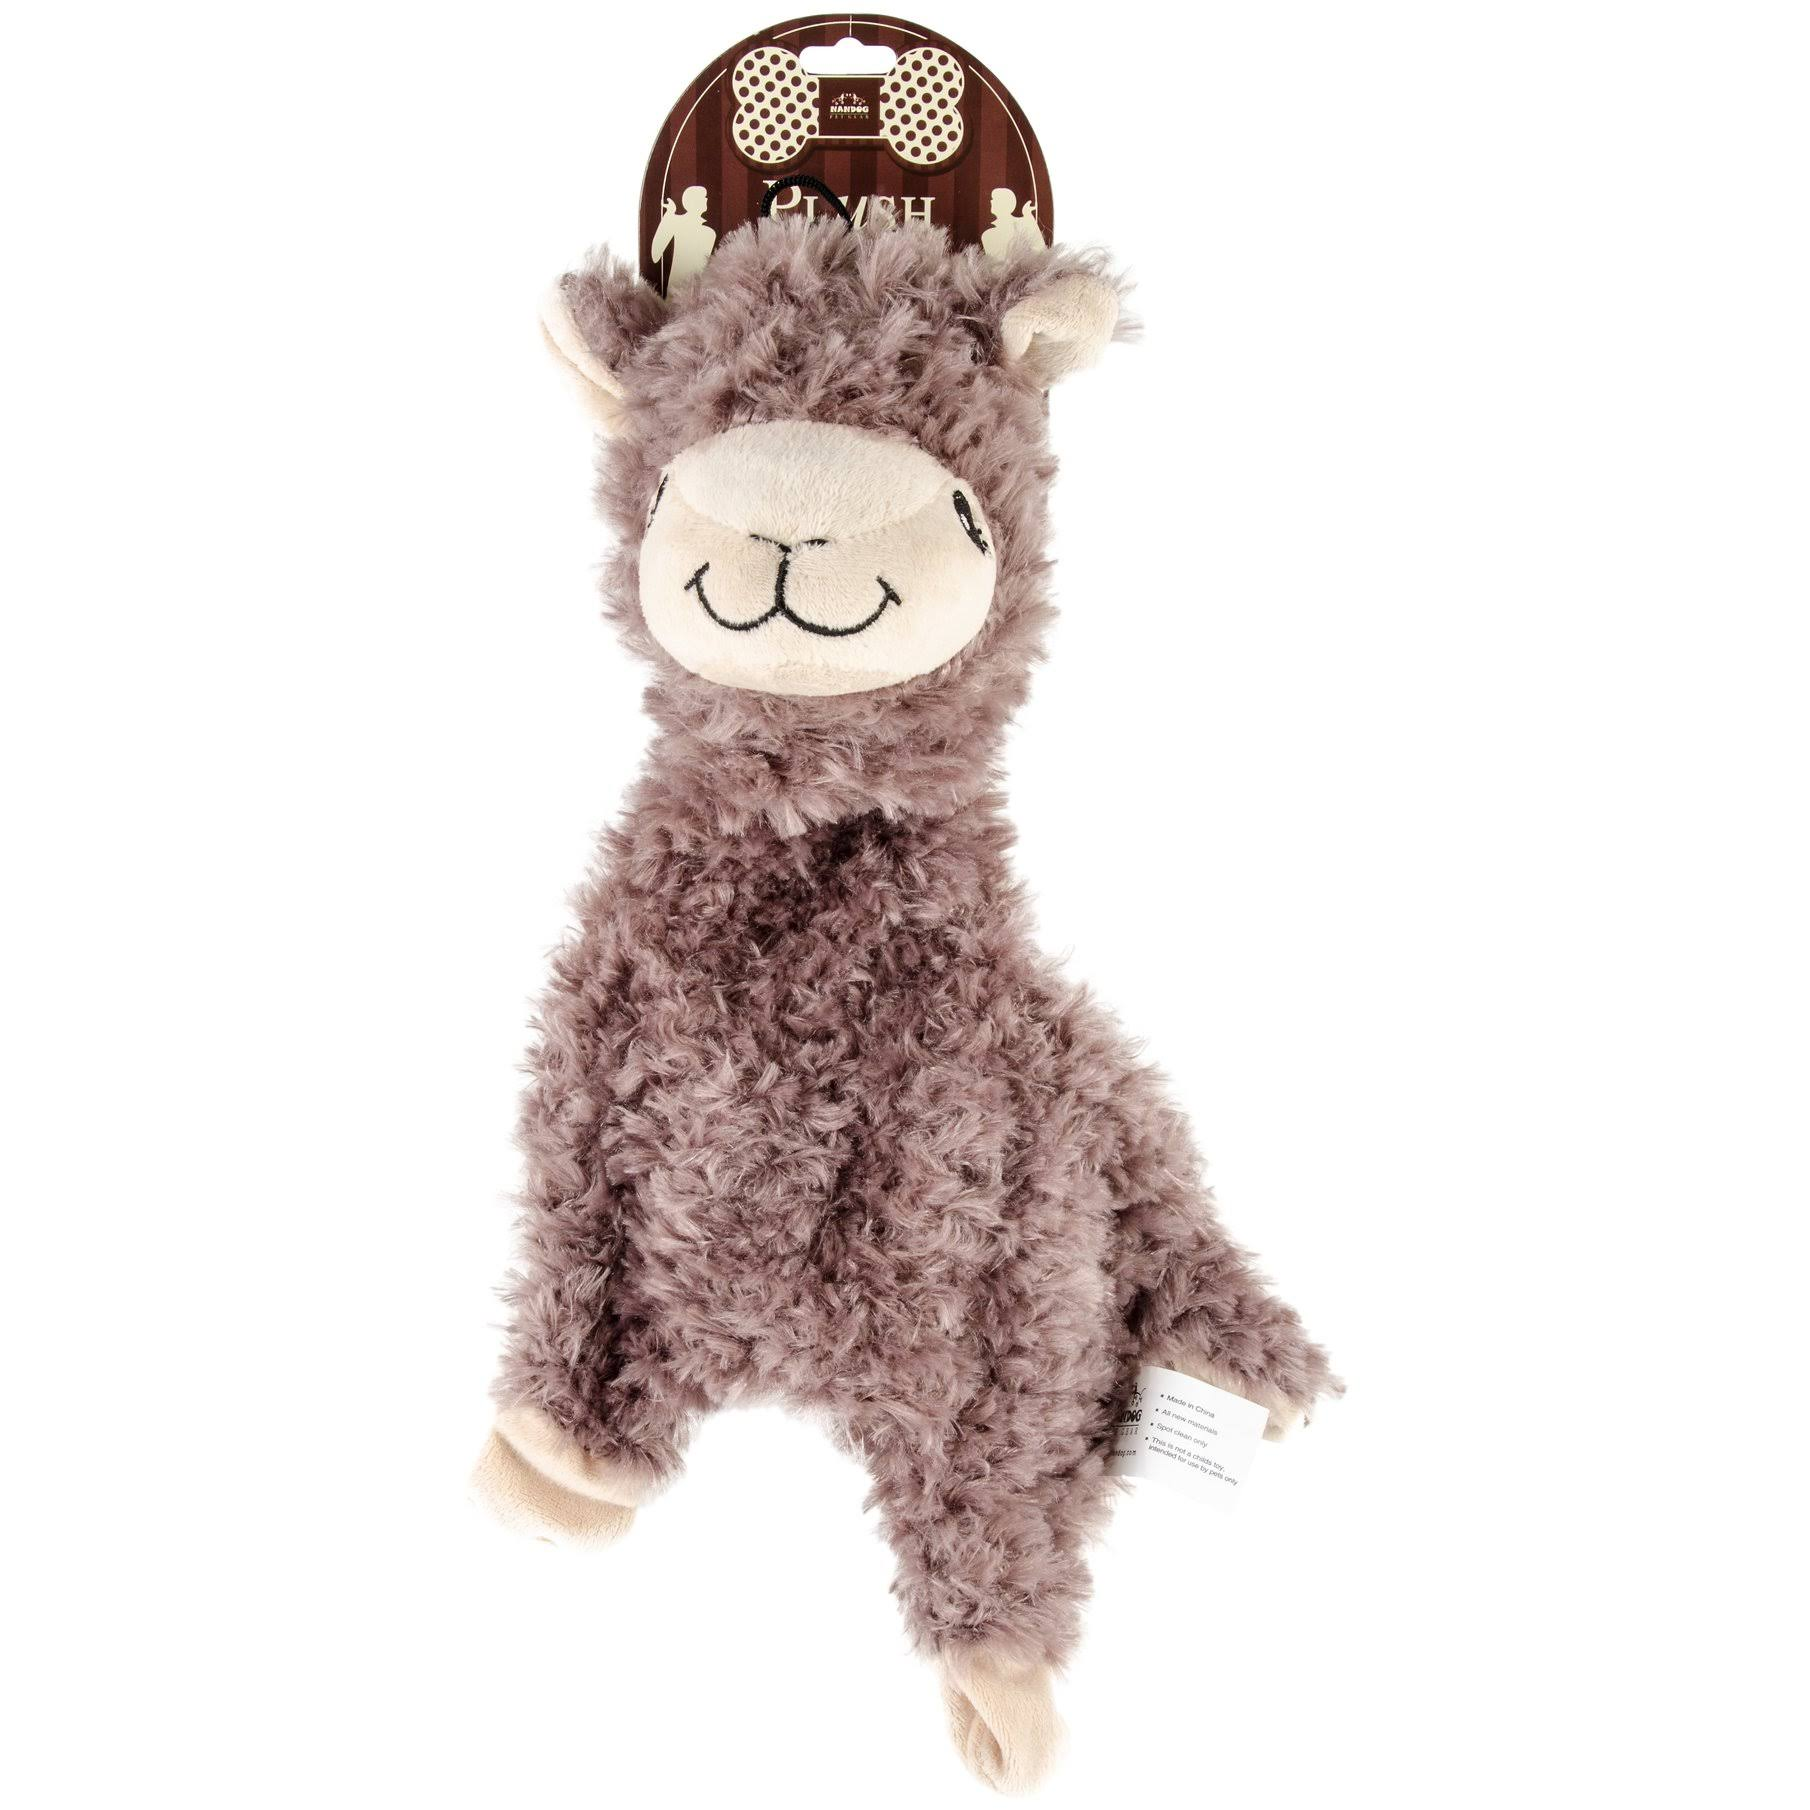 Nandog Pet Gear Nandog My BFF Plush Toy - Brown Alpaca